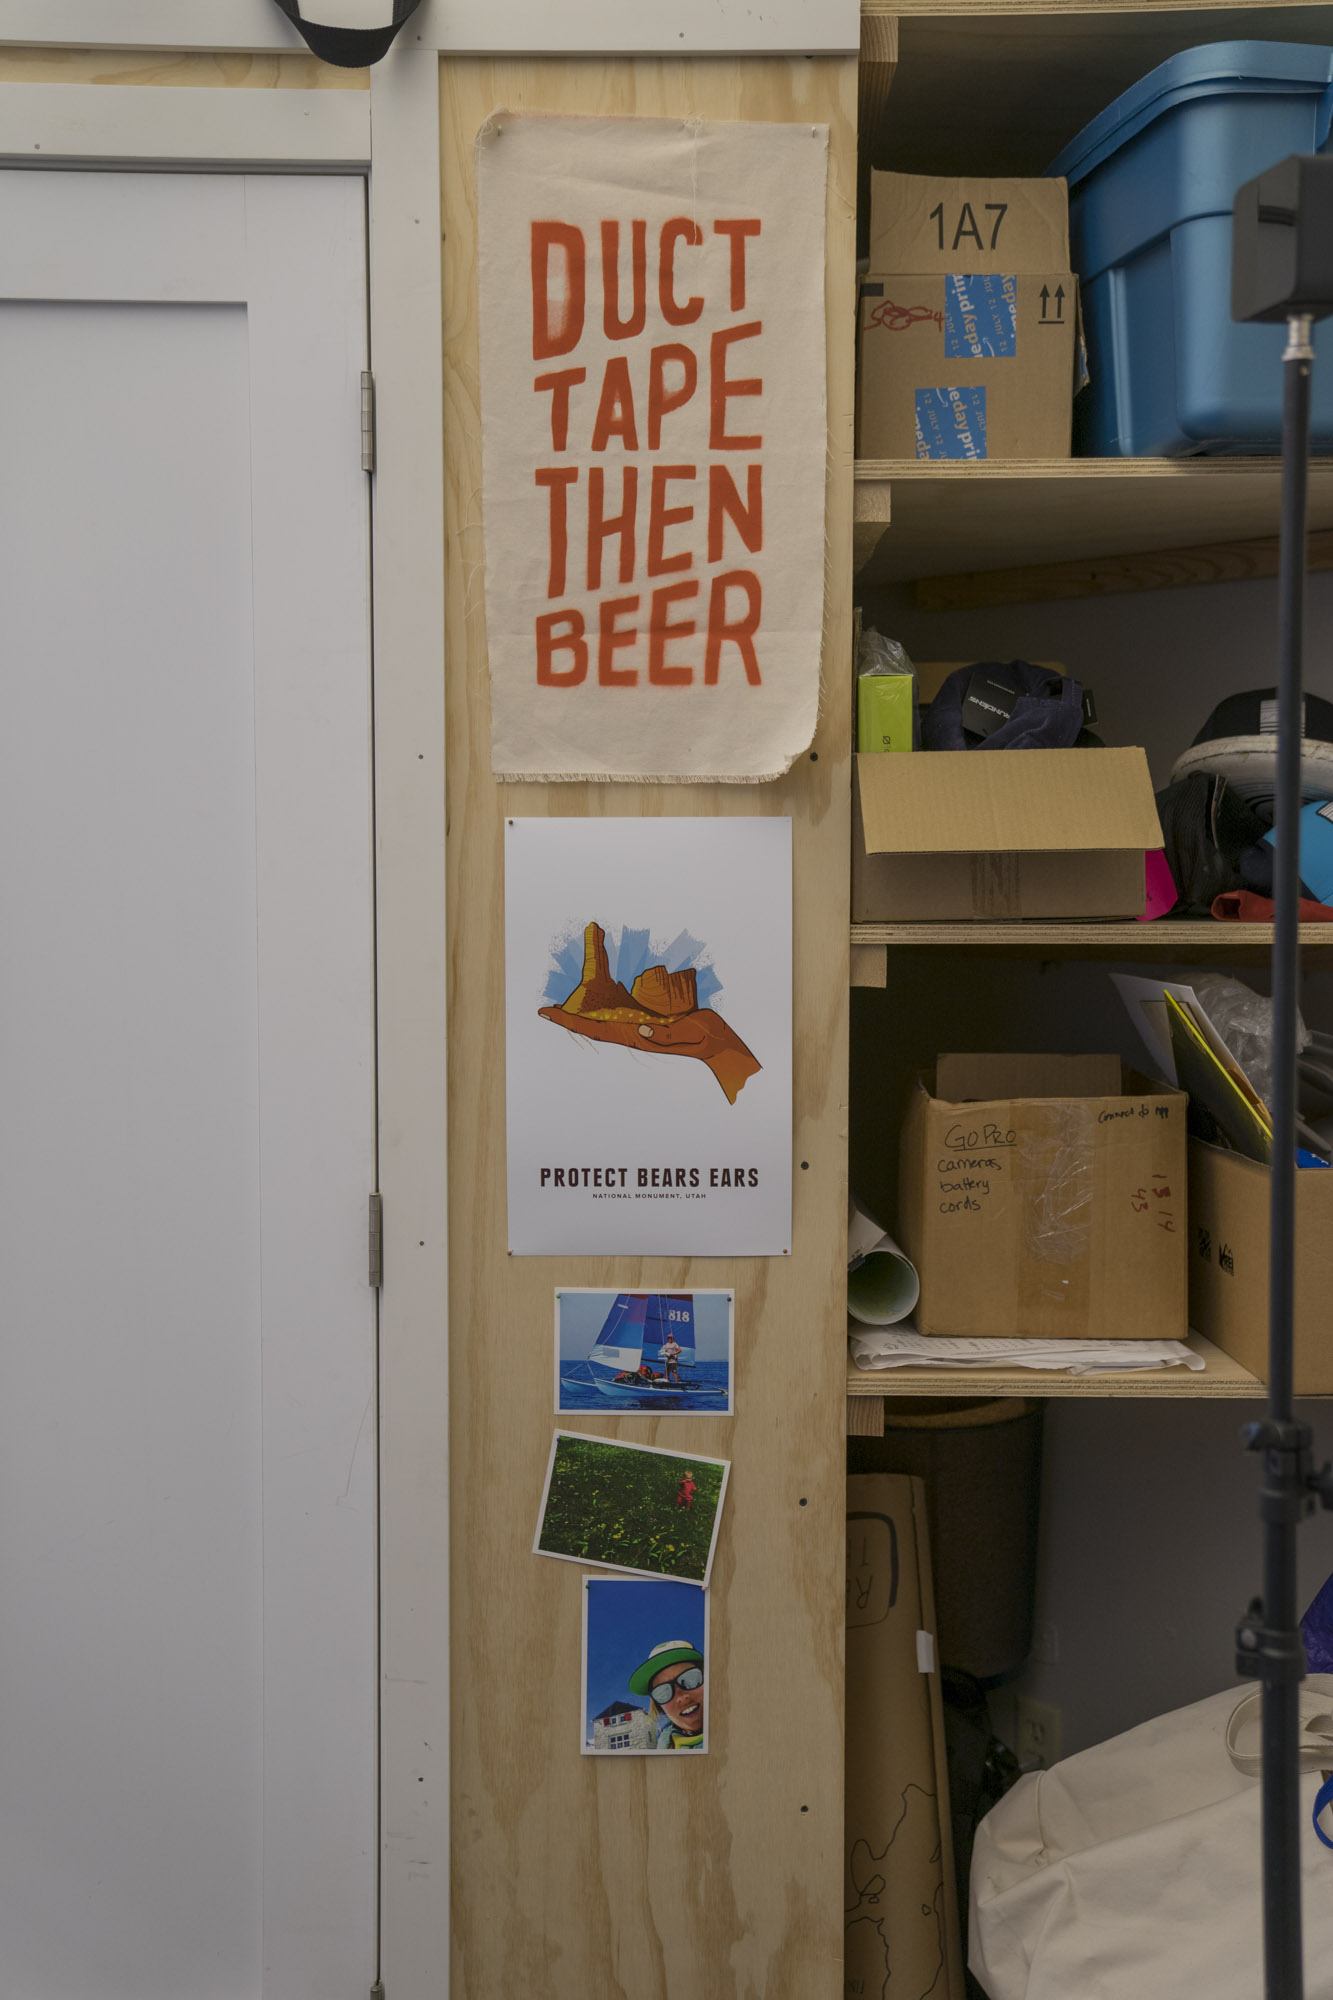 Duct Tape Then Beer sign and boxes in Seattle.